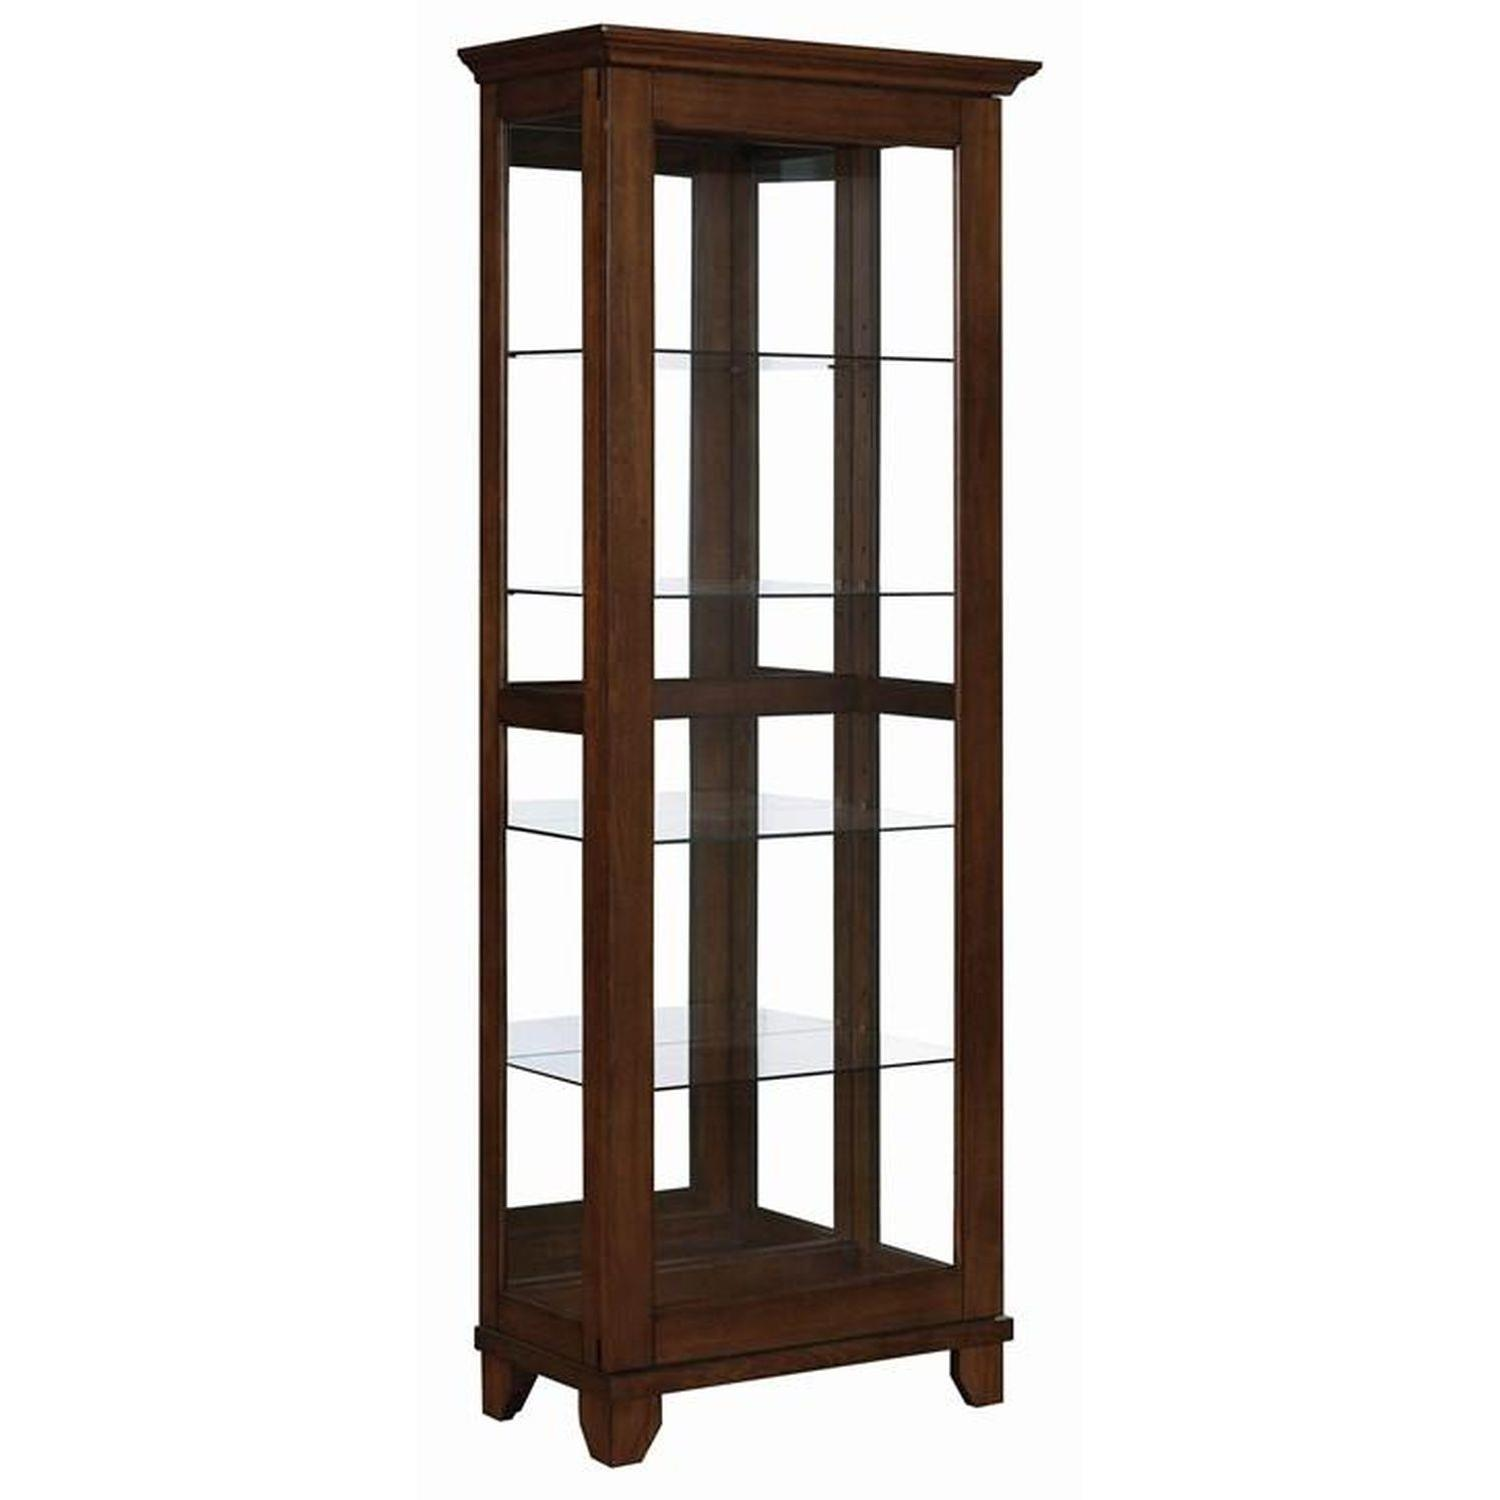 Curio Cabinet in Chestnut Finish w/ Glass Panels - image-0